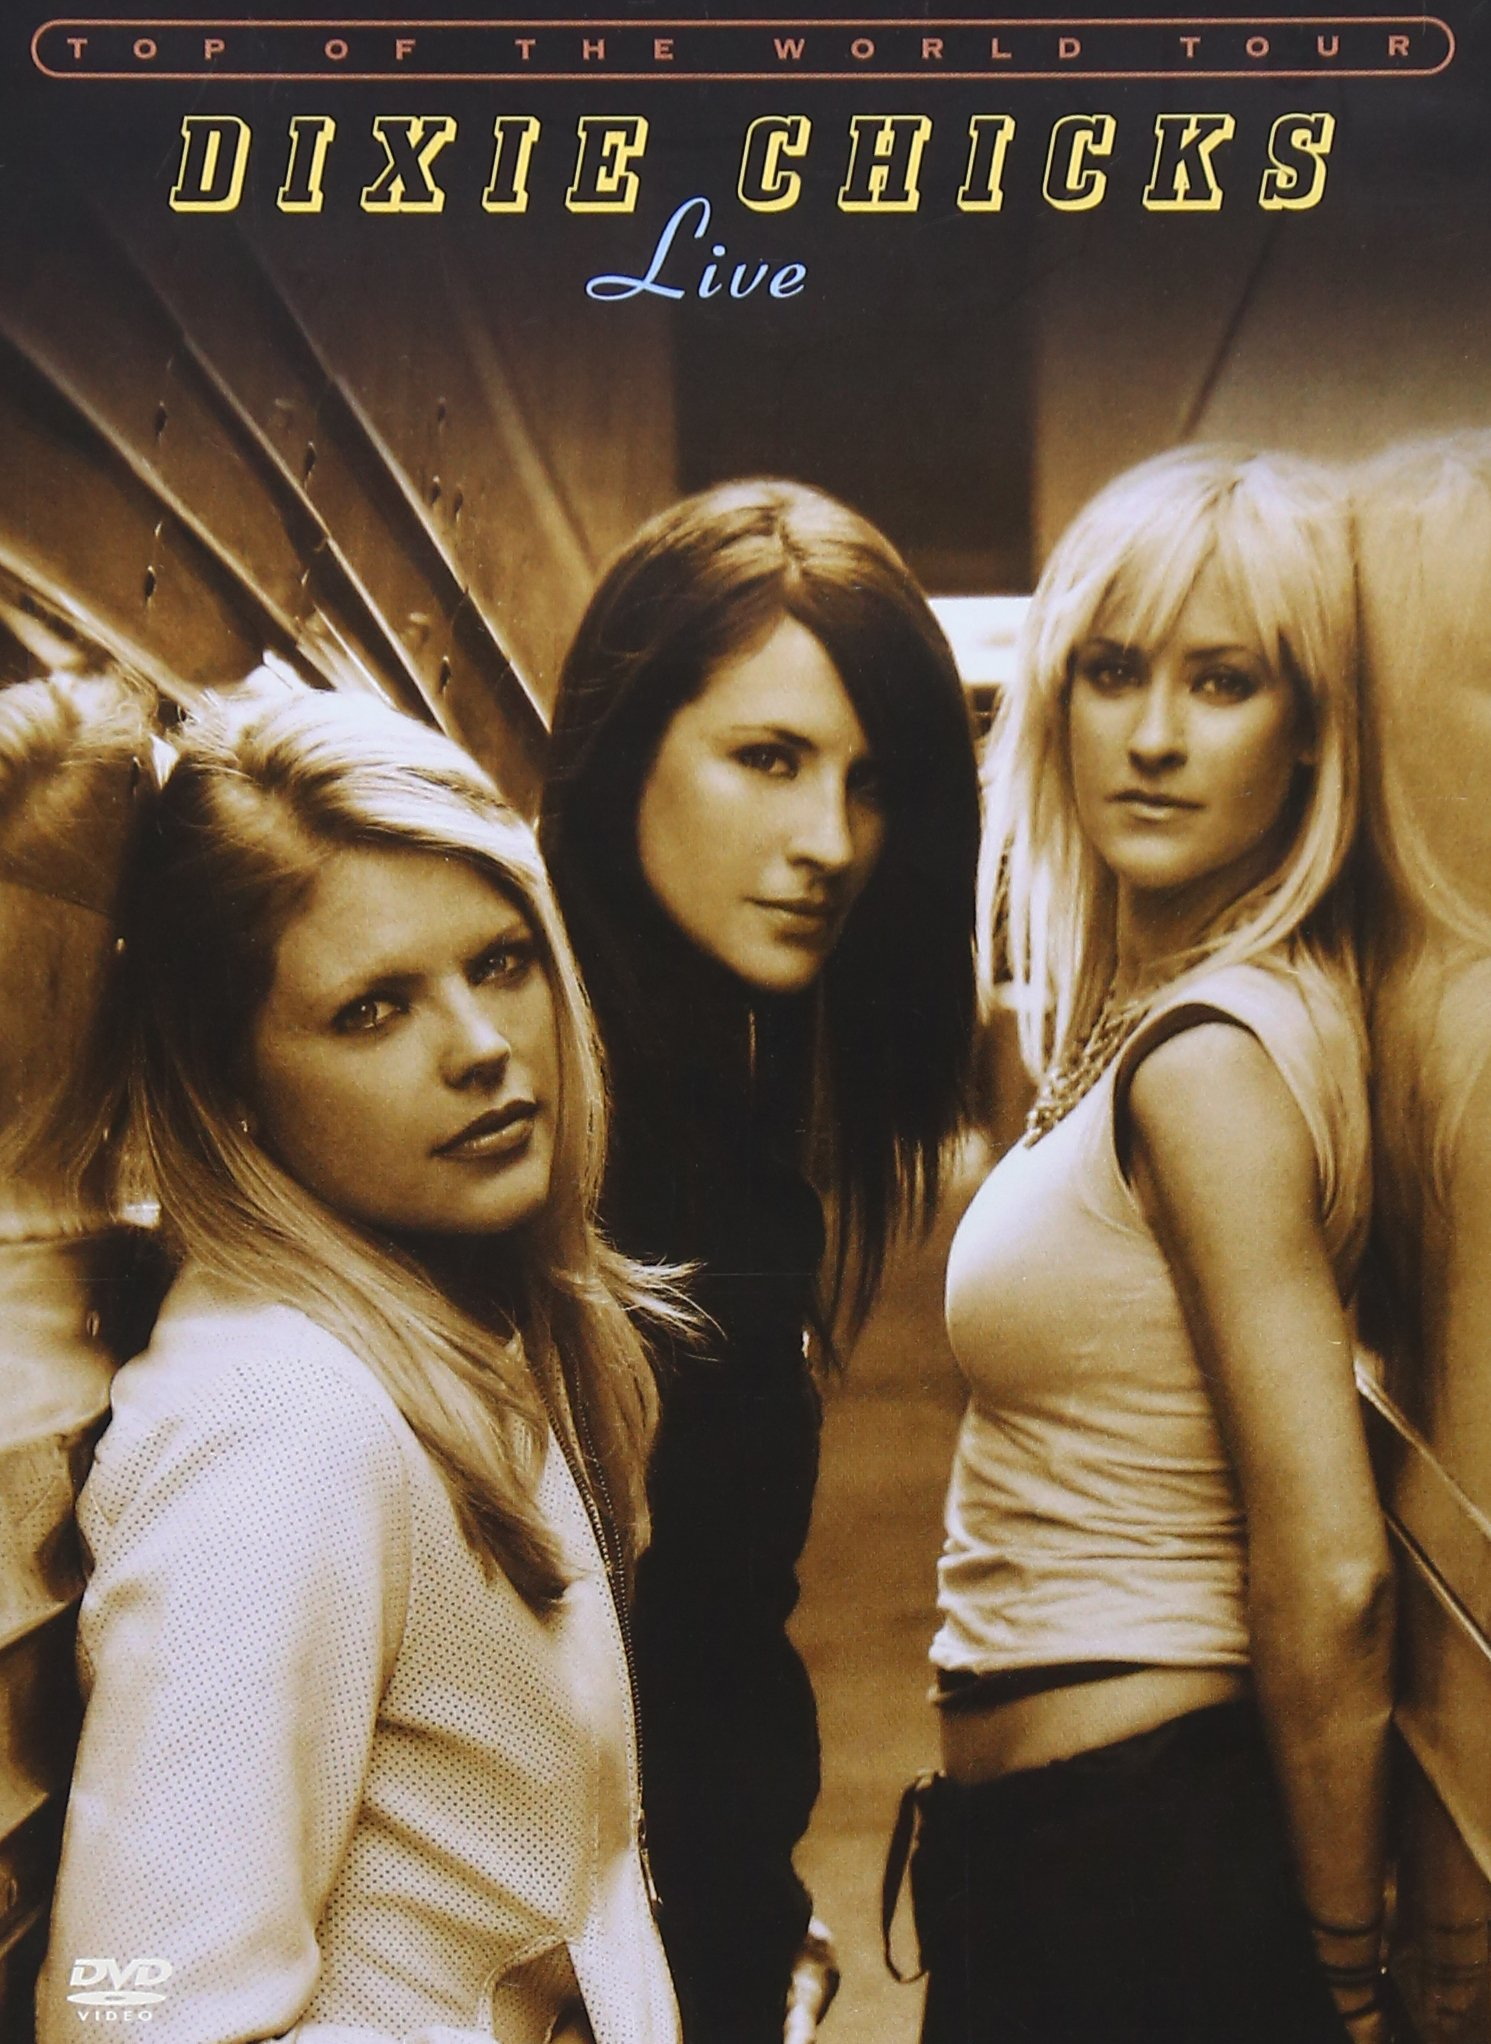 Dixie Chicks - Top of the World Tour Live by Sony